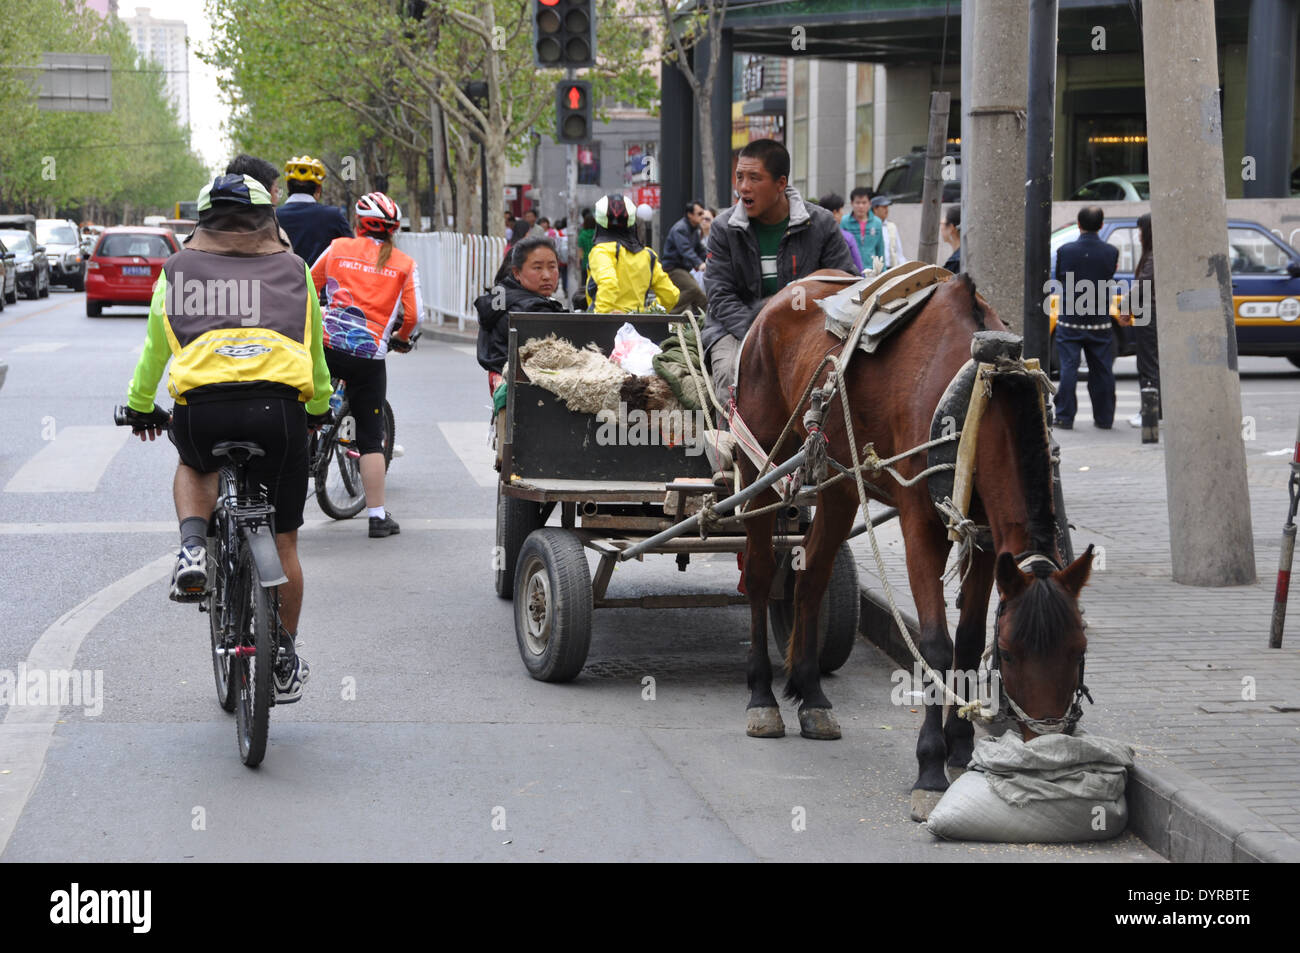 Australian cyclists on a cycling tour of China riding past a horse and cart in Beijing - Stock Image